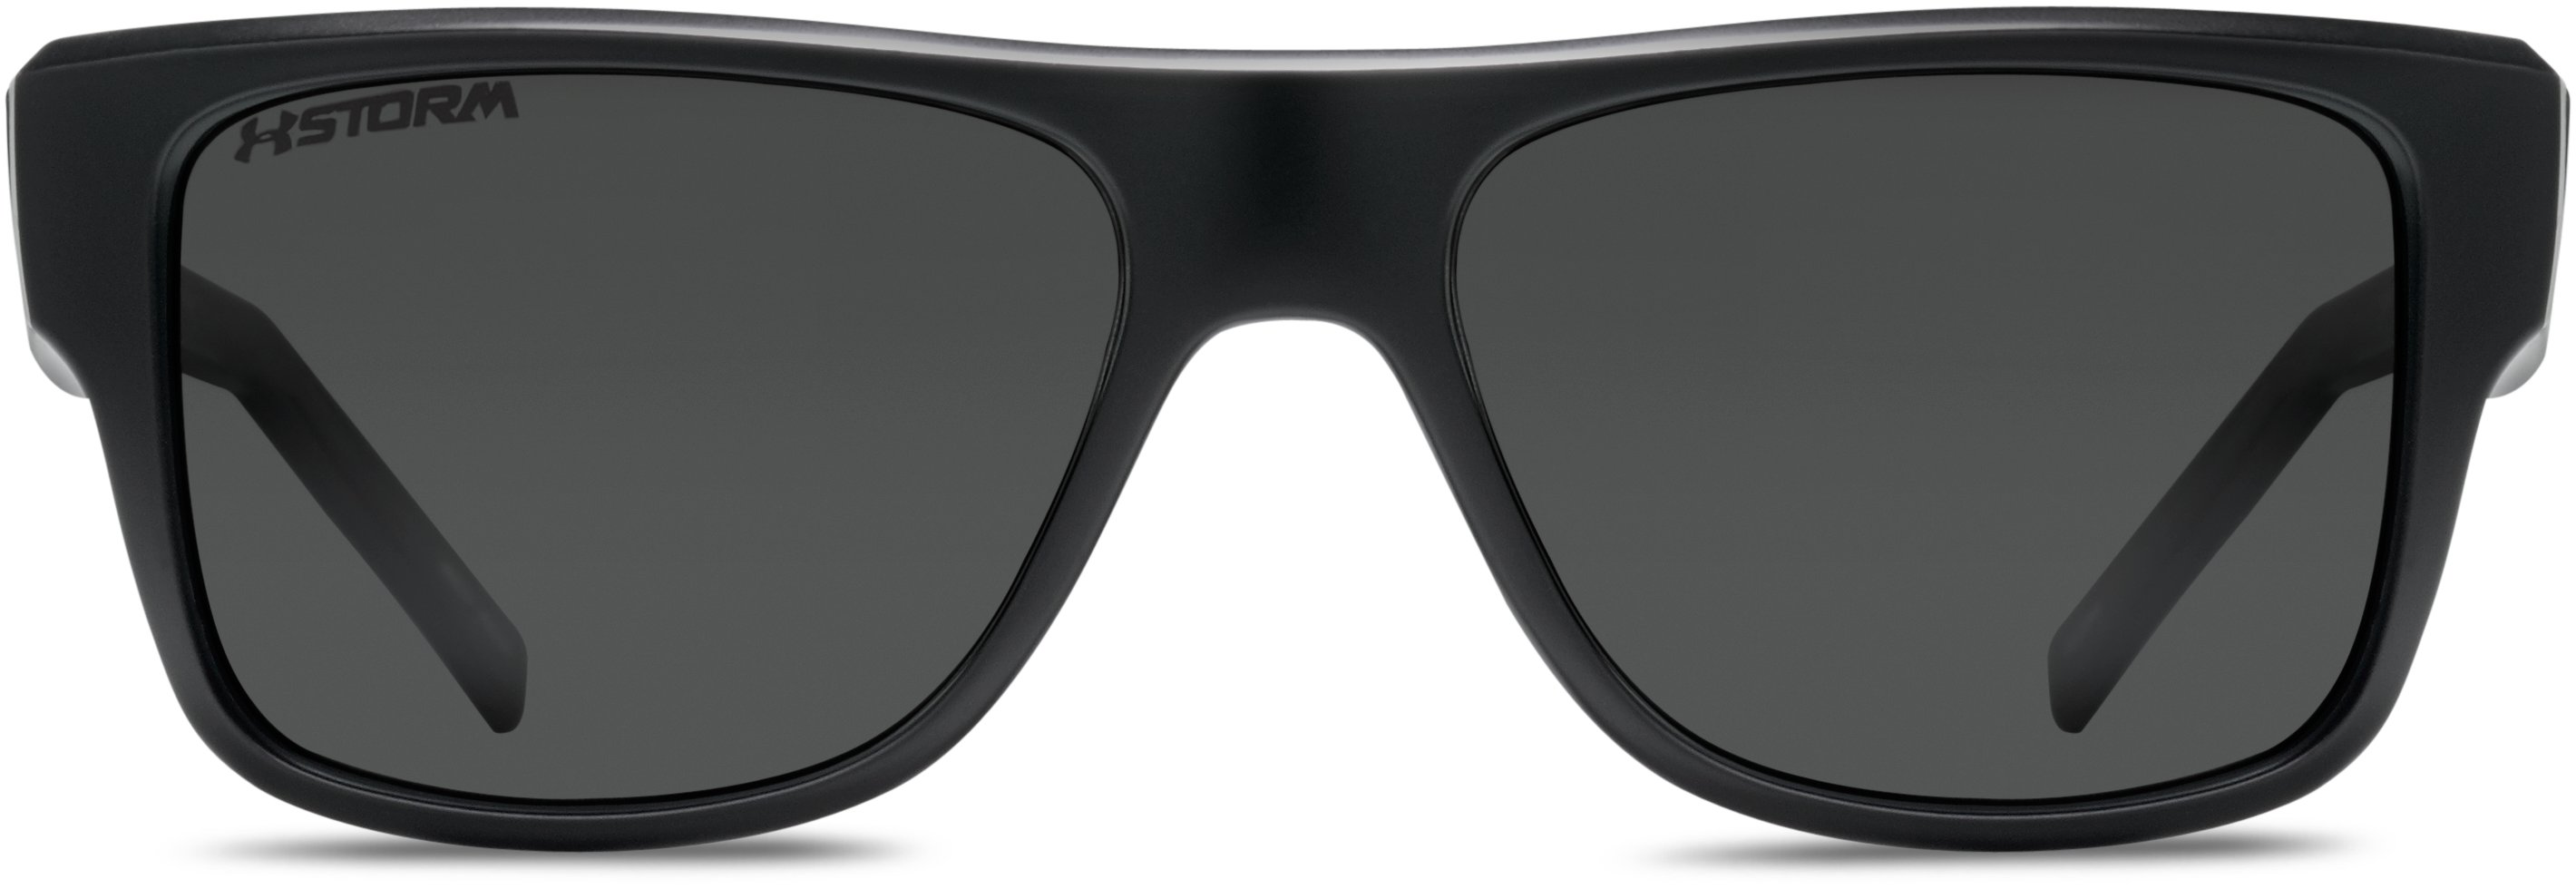 UA Regime Storm Polarized Sunglasses, Satin Black, undefined